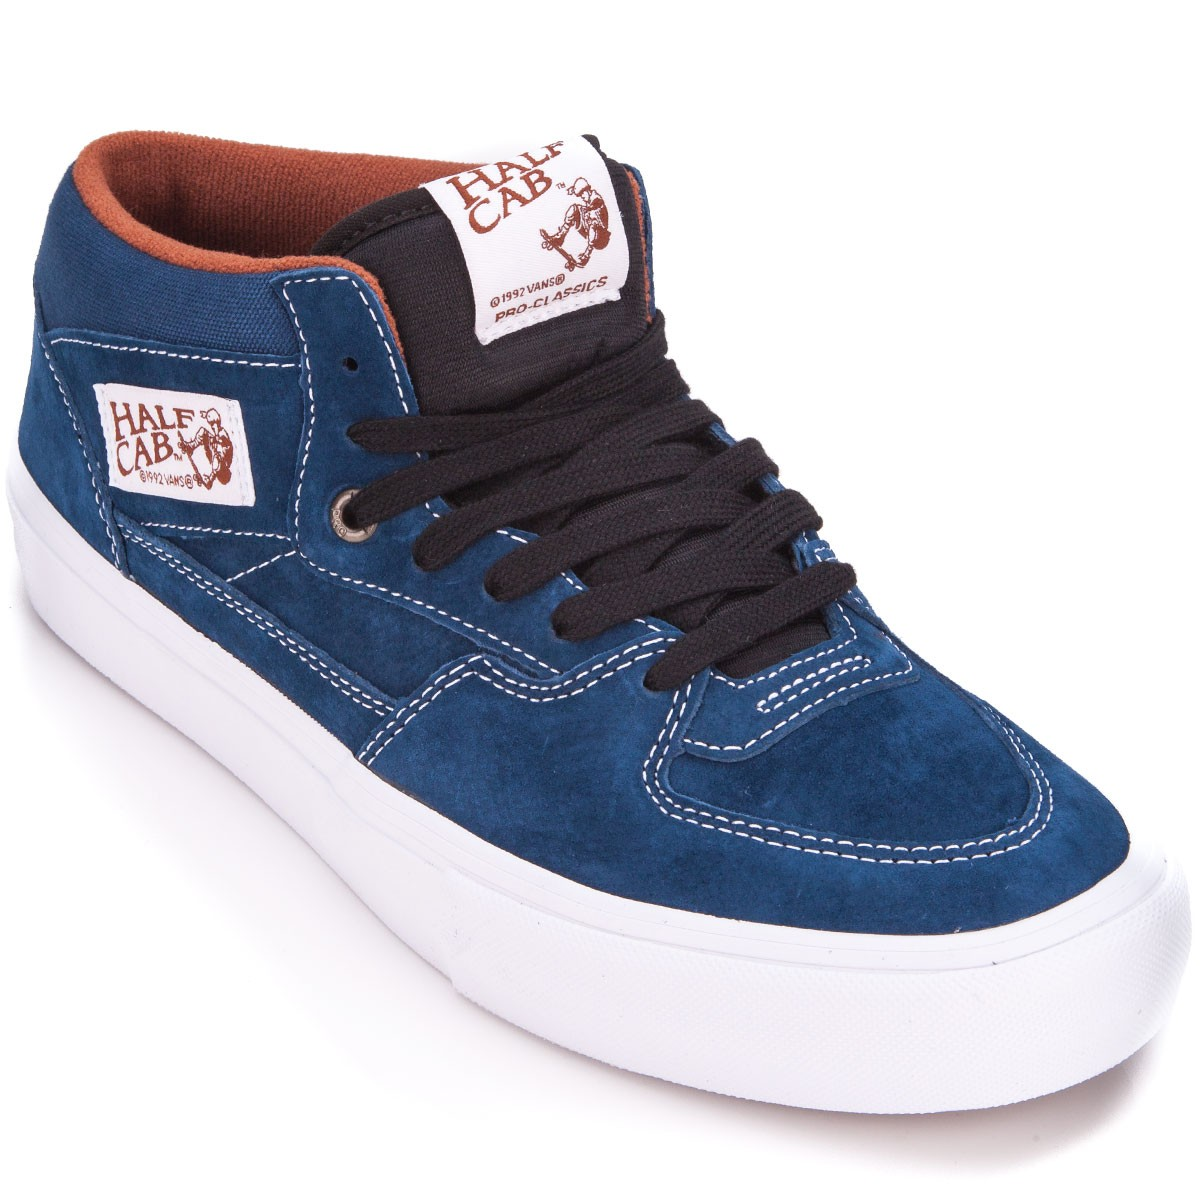 vans half cab cheap sale